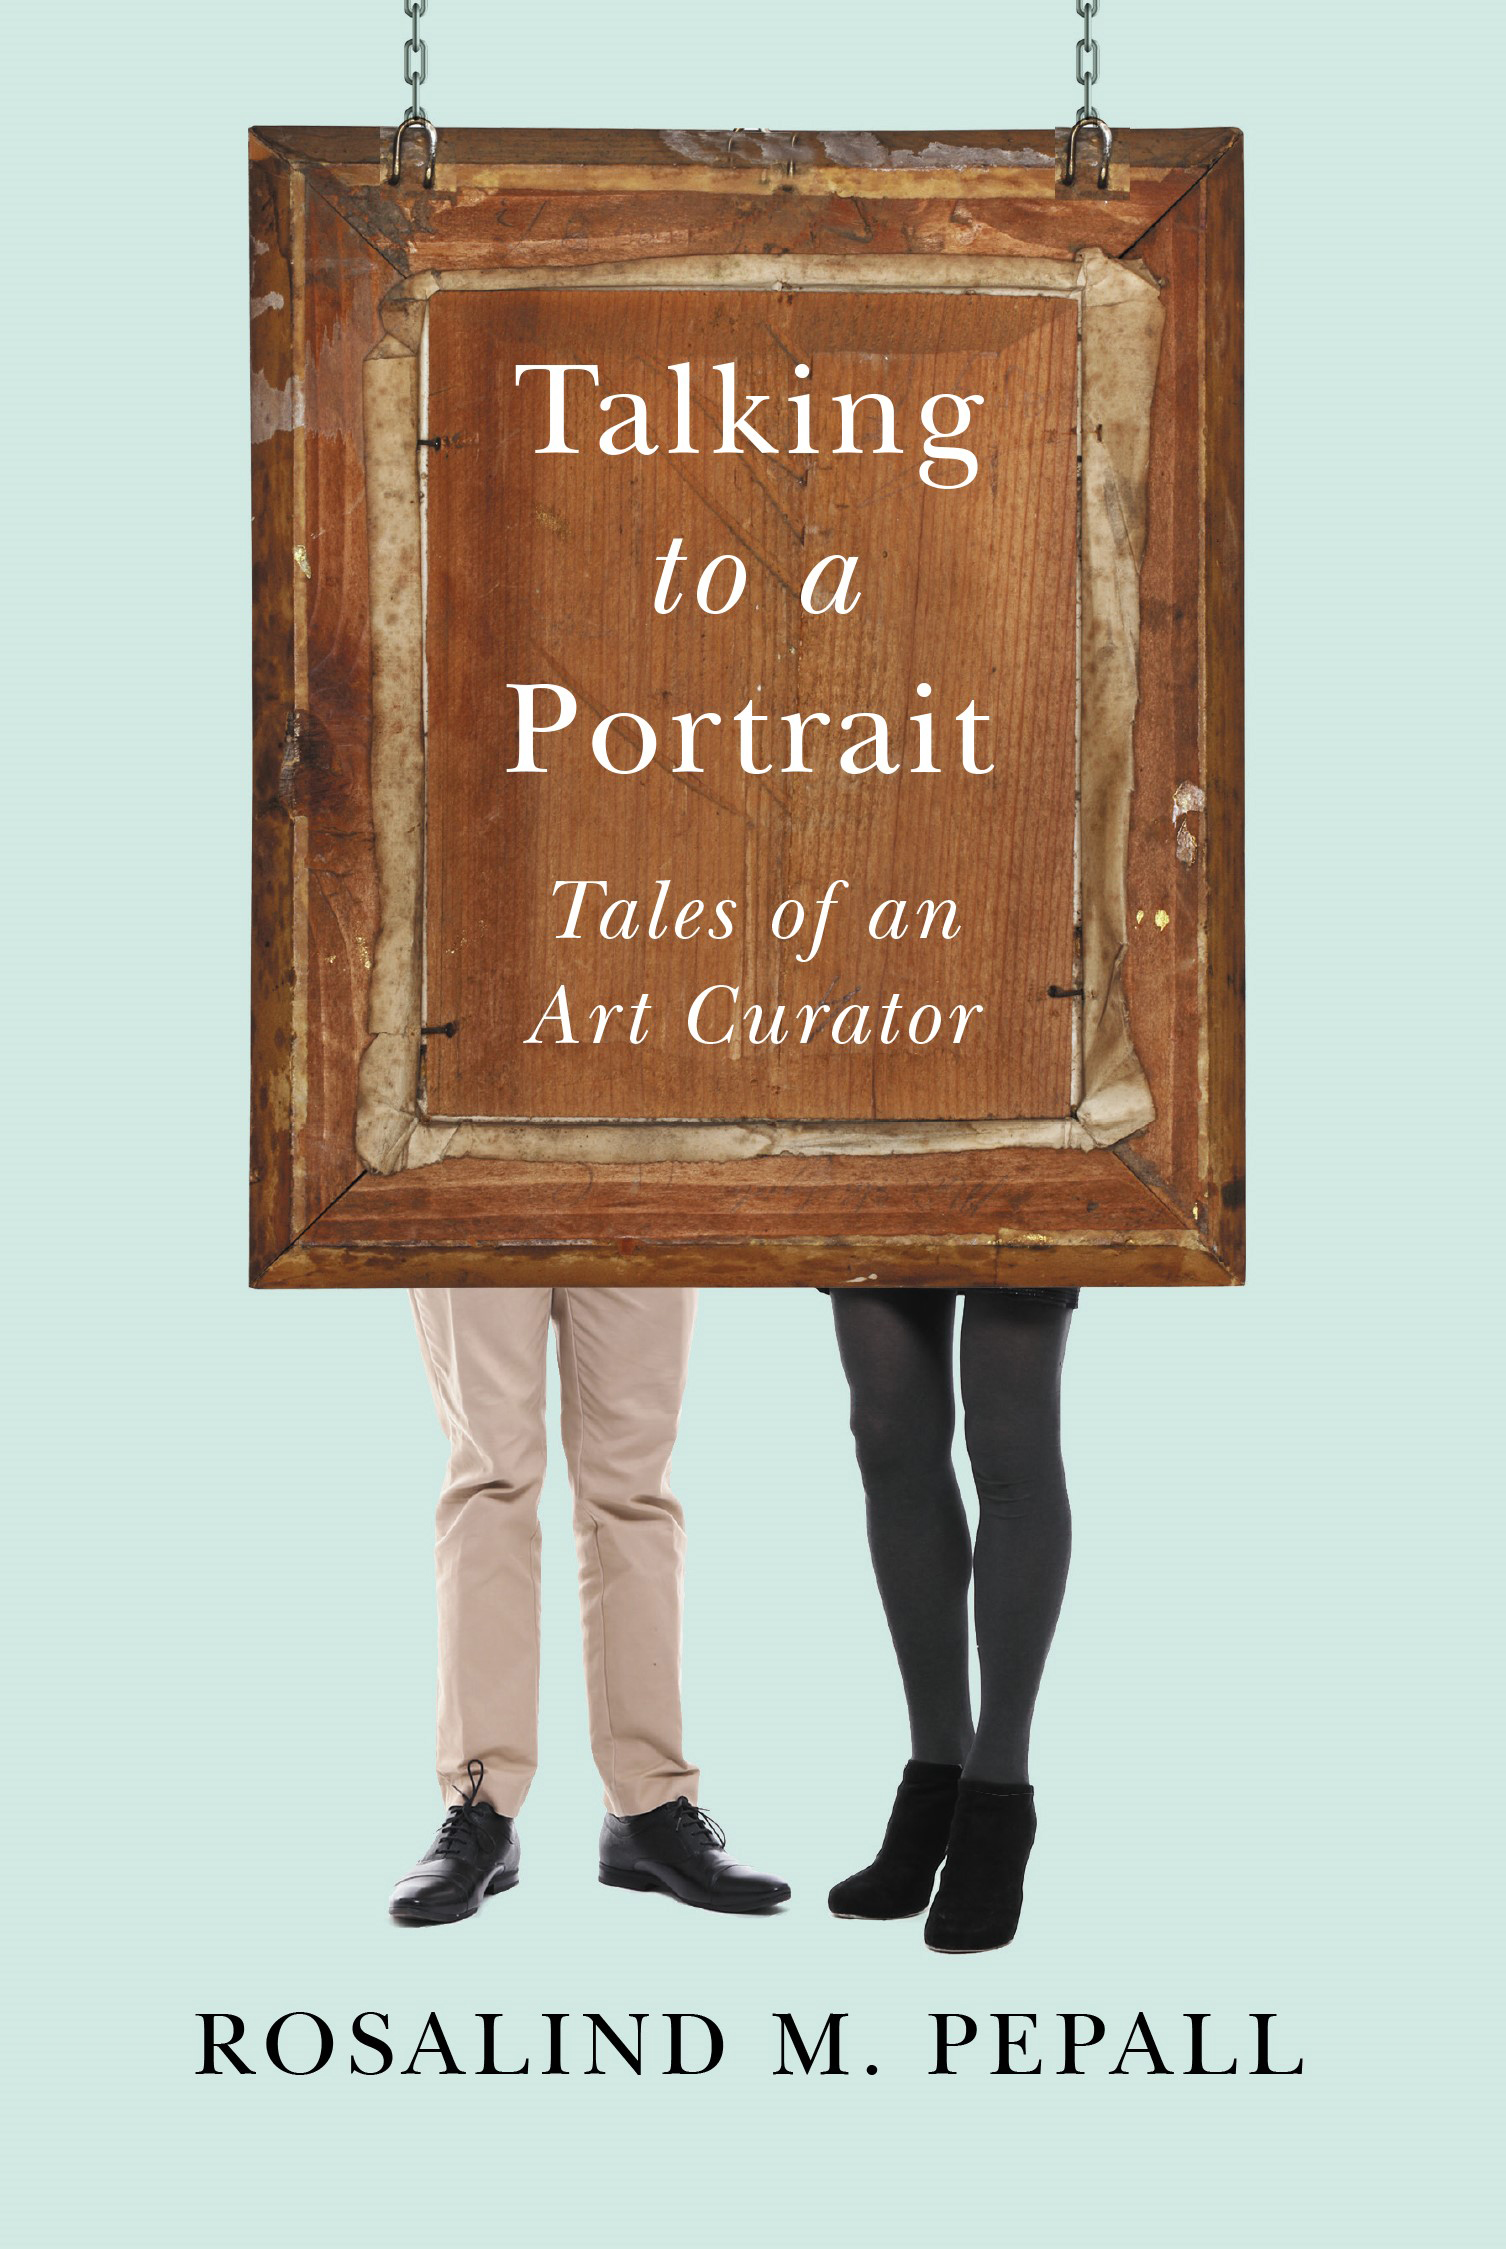 Talking to a Portrait: Tales of an Art Curator